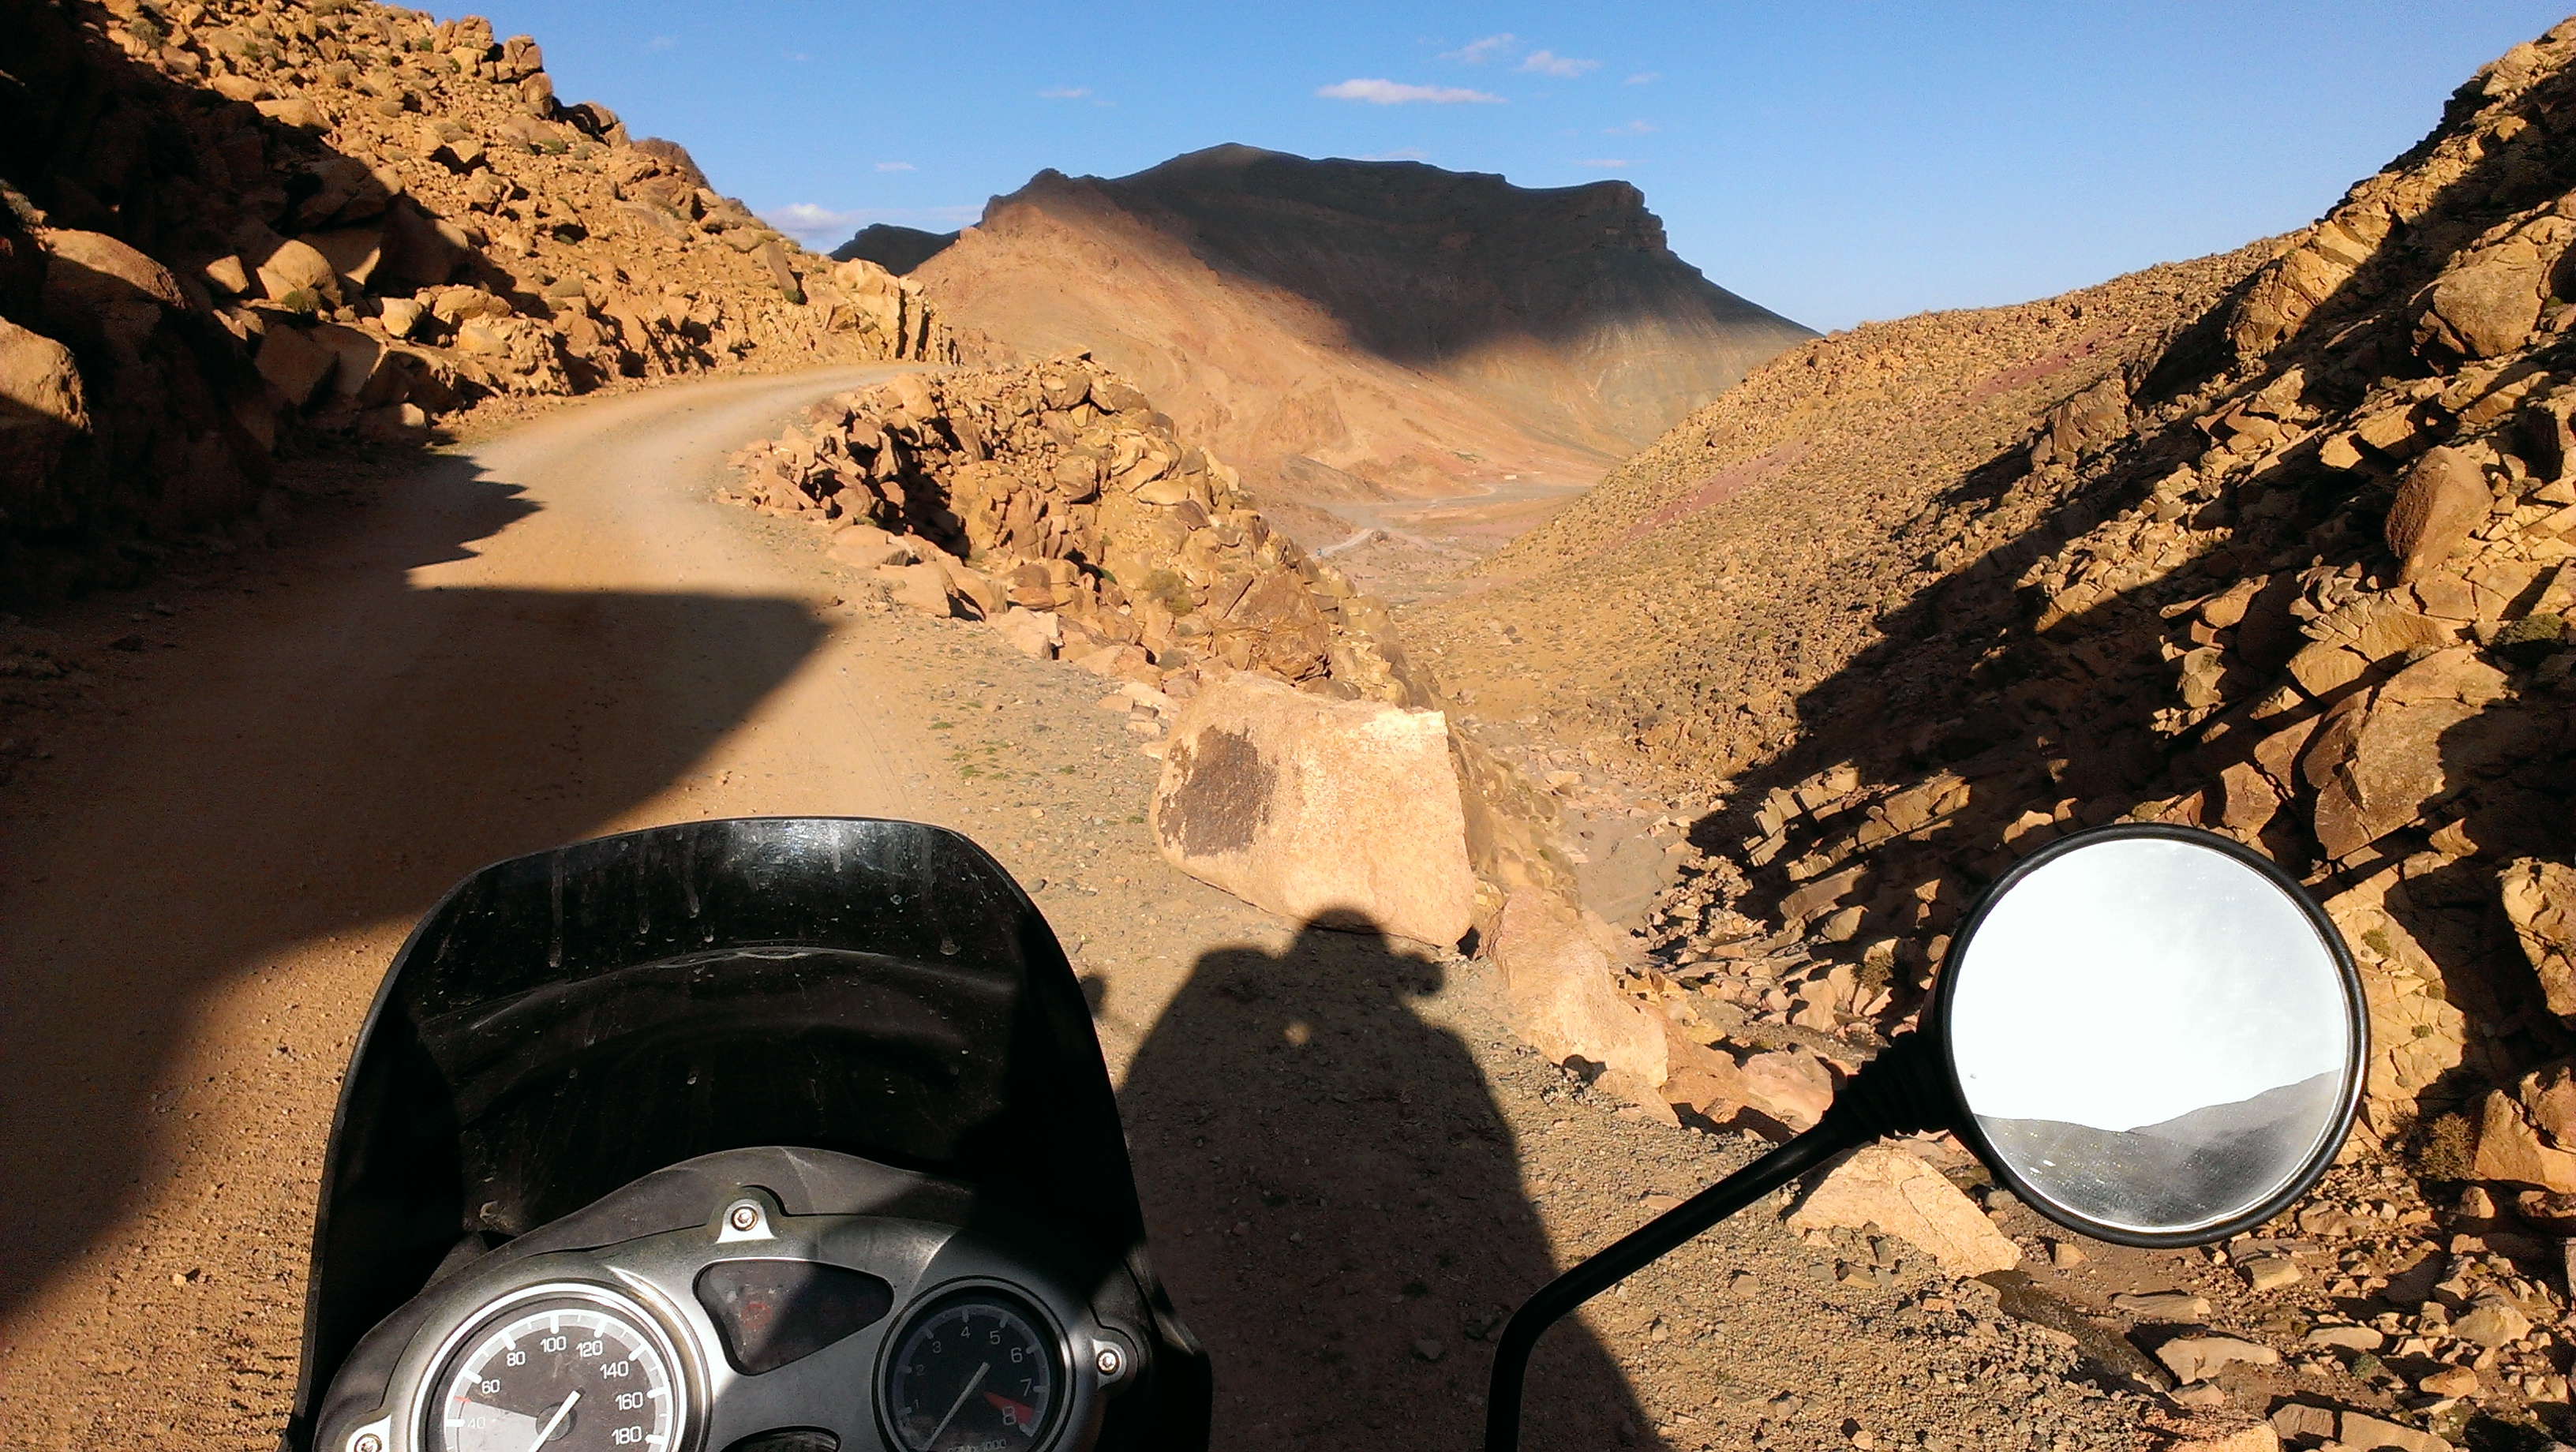 Crossing Atlas mountains from Dadesh to Imilchil.